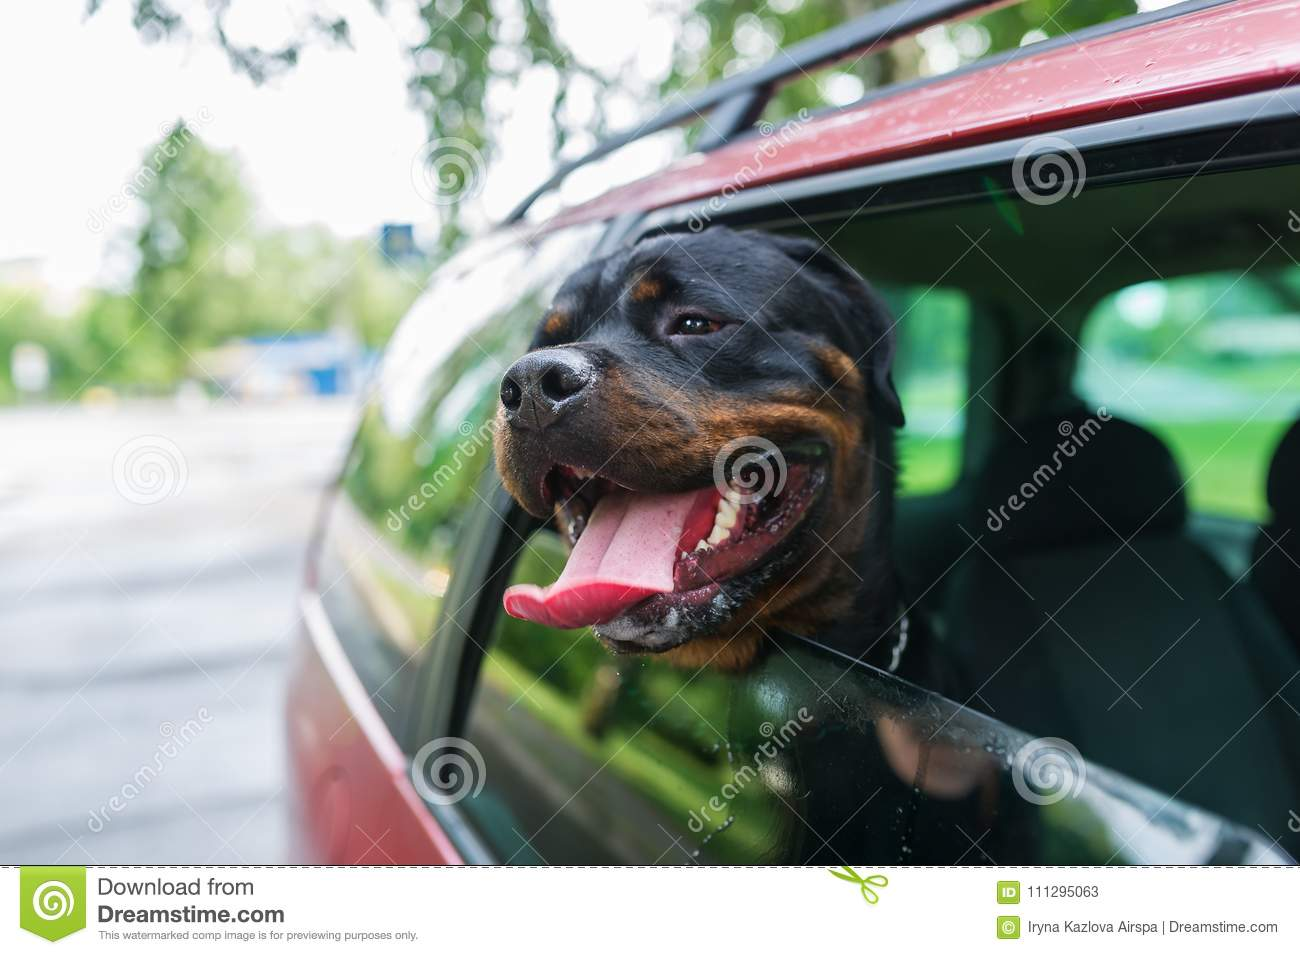 Rottweiler dog poking their head out the window of a car